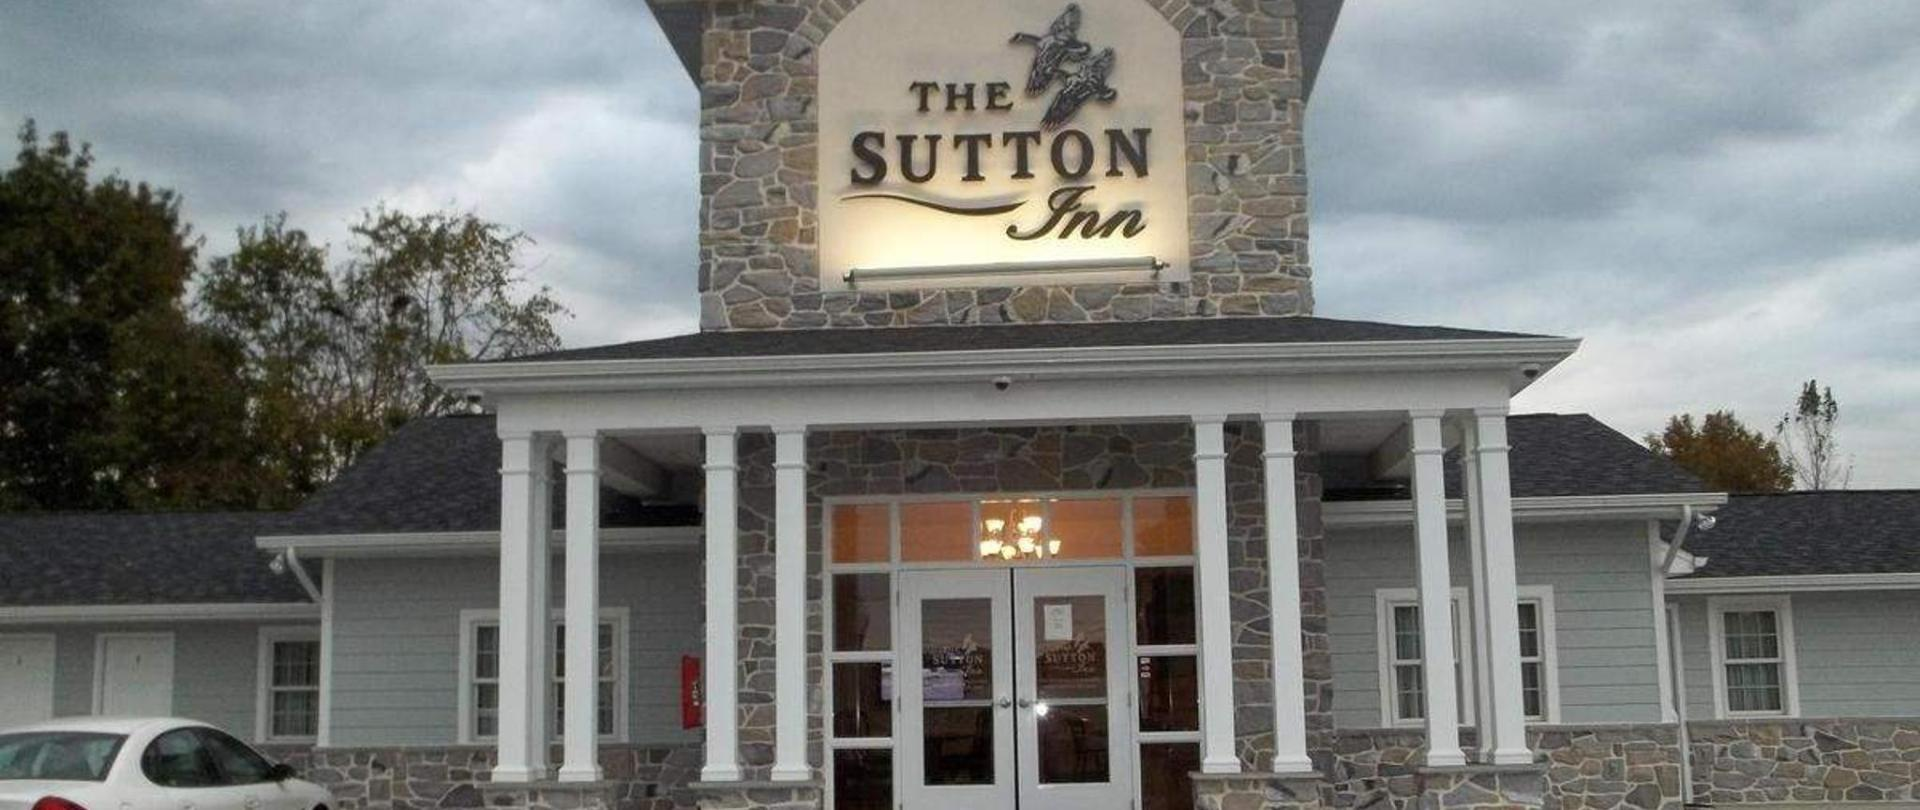 Sutton Inn Lander.jpg